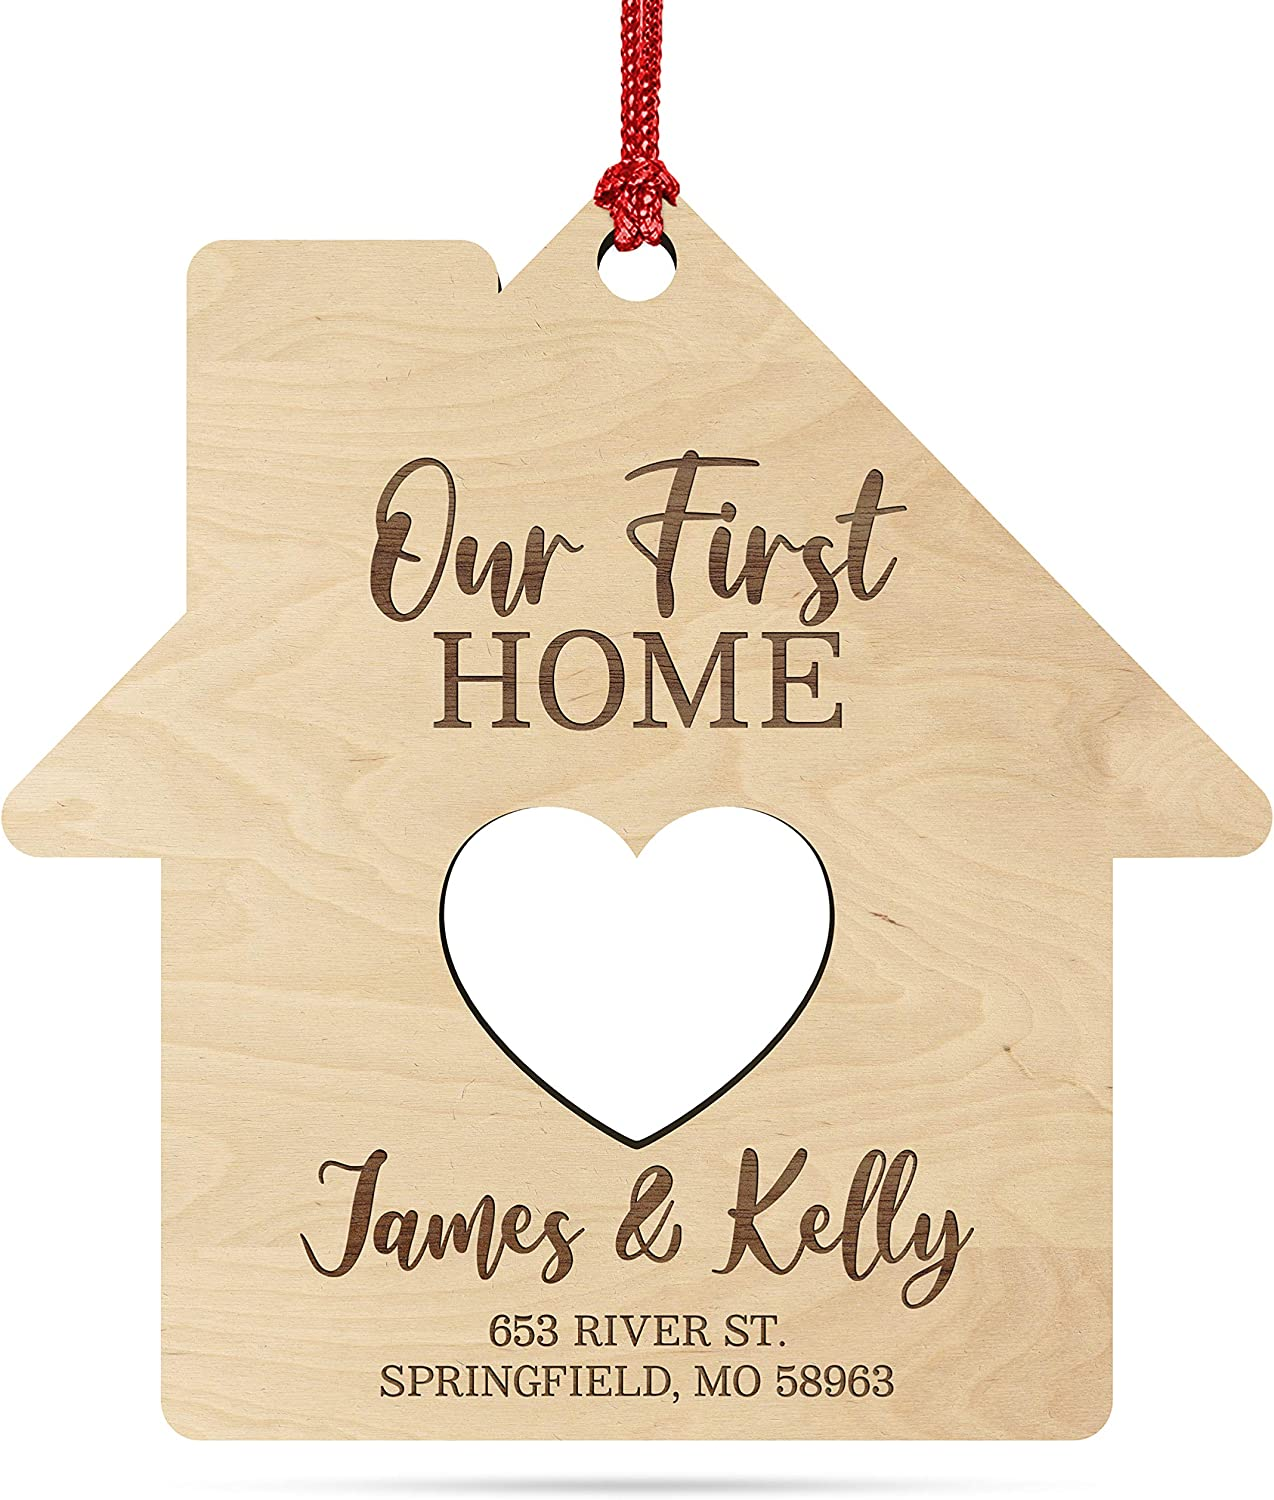 Our First Home, Personalized New Home Christmas Ornament w/Your Address & Names, Custom Laser Engraved 4